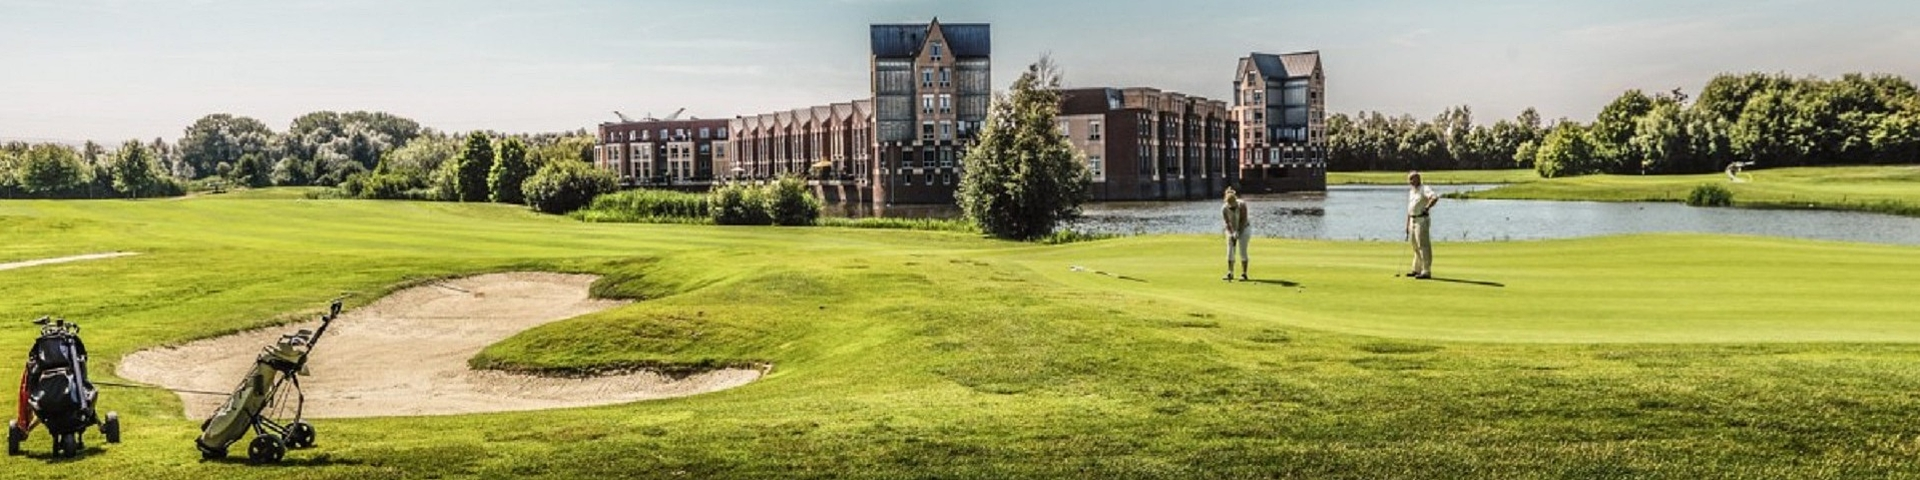 BurgGolf Golfresort de Purmer | Golf i Holland